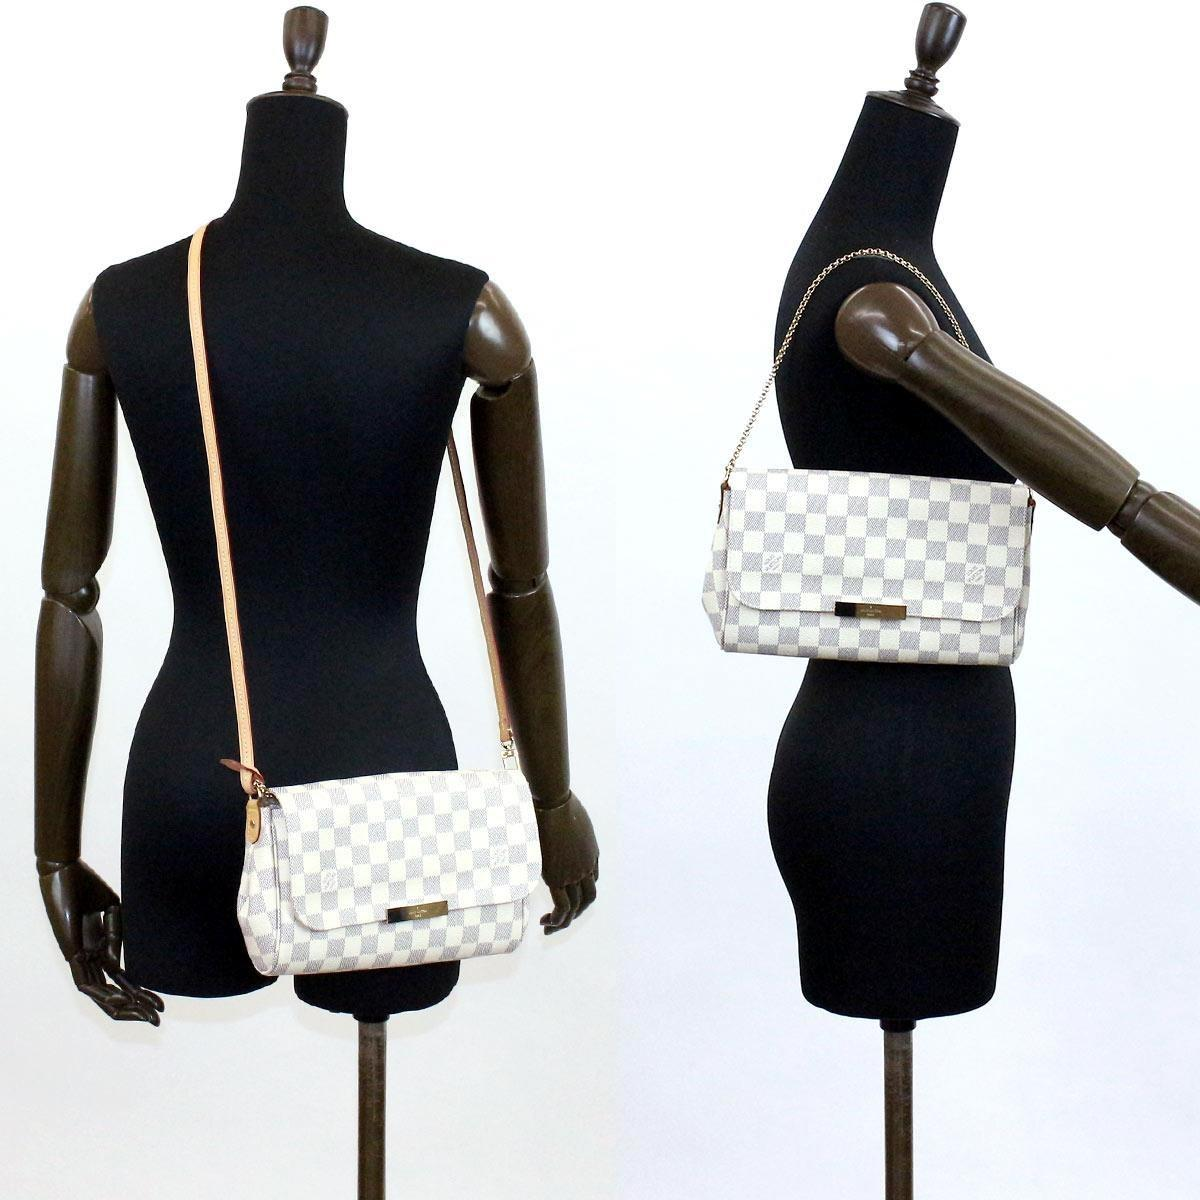 00dd4dd4da0e Lyst - Louis Vuitton Damier Azur Favorite Mm 2way Shoulder Bag ...